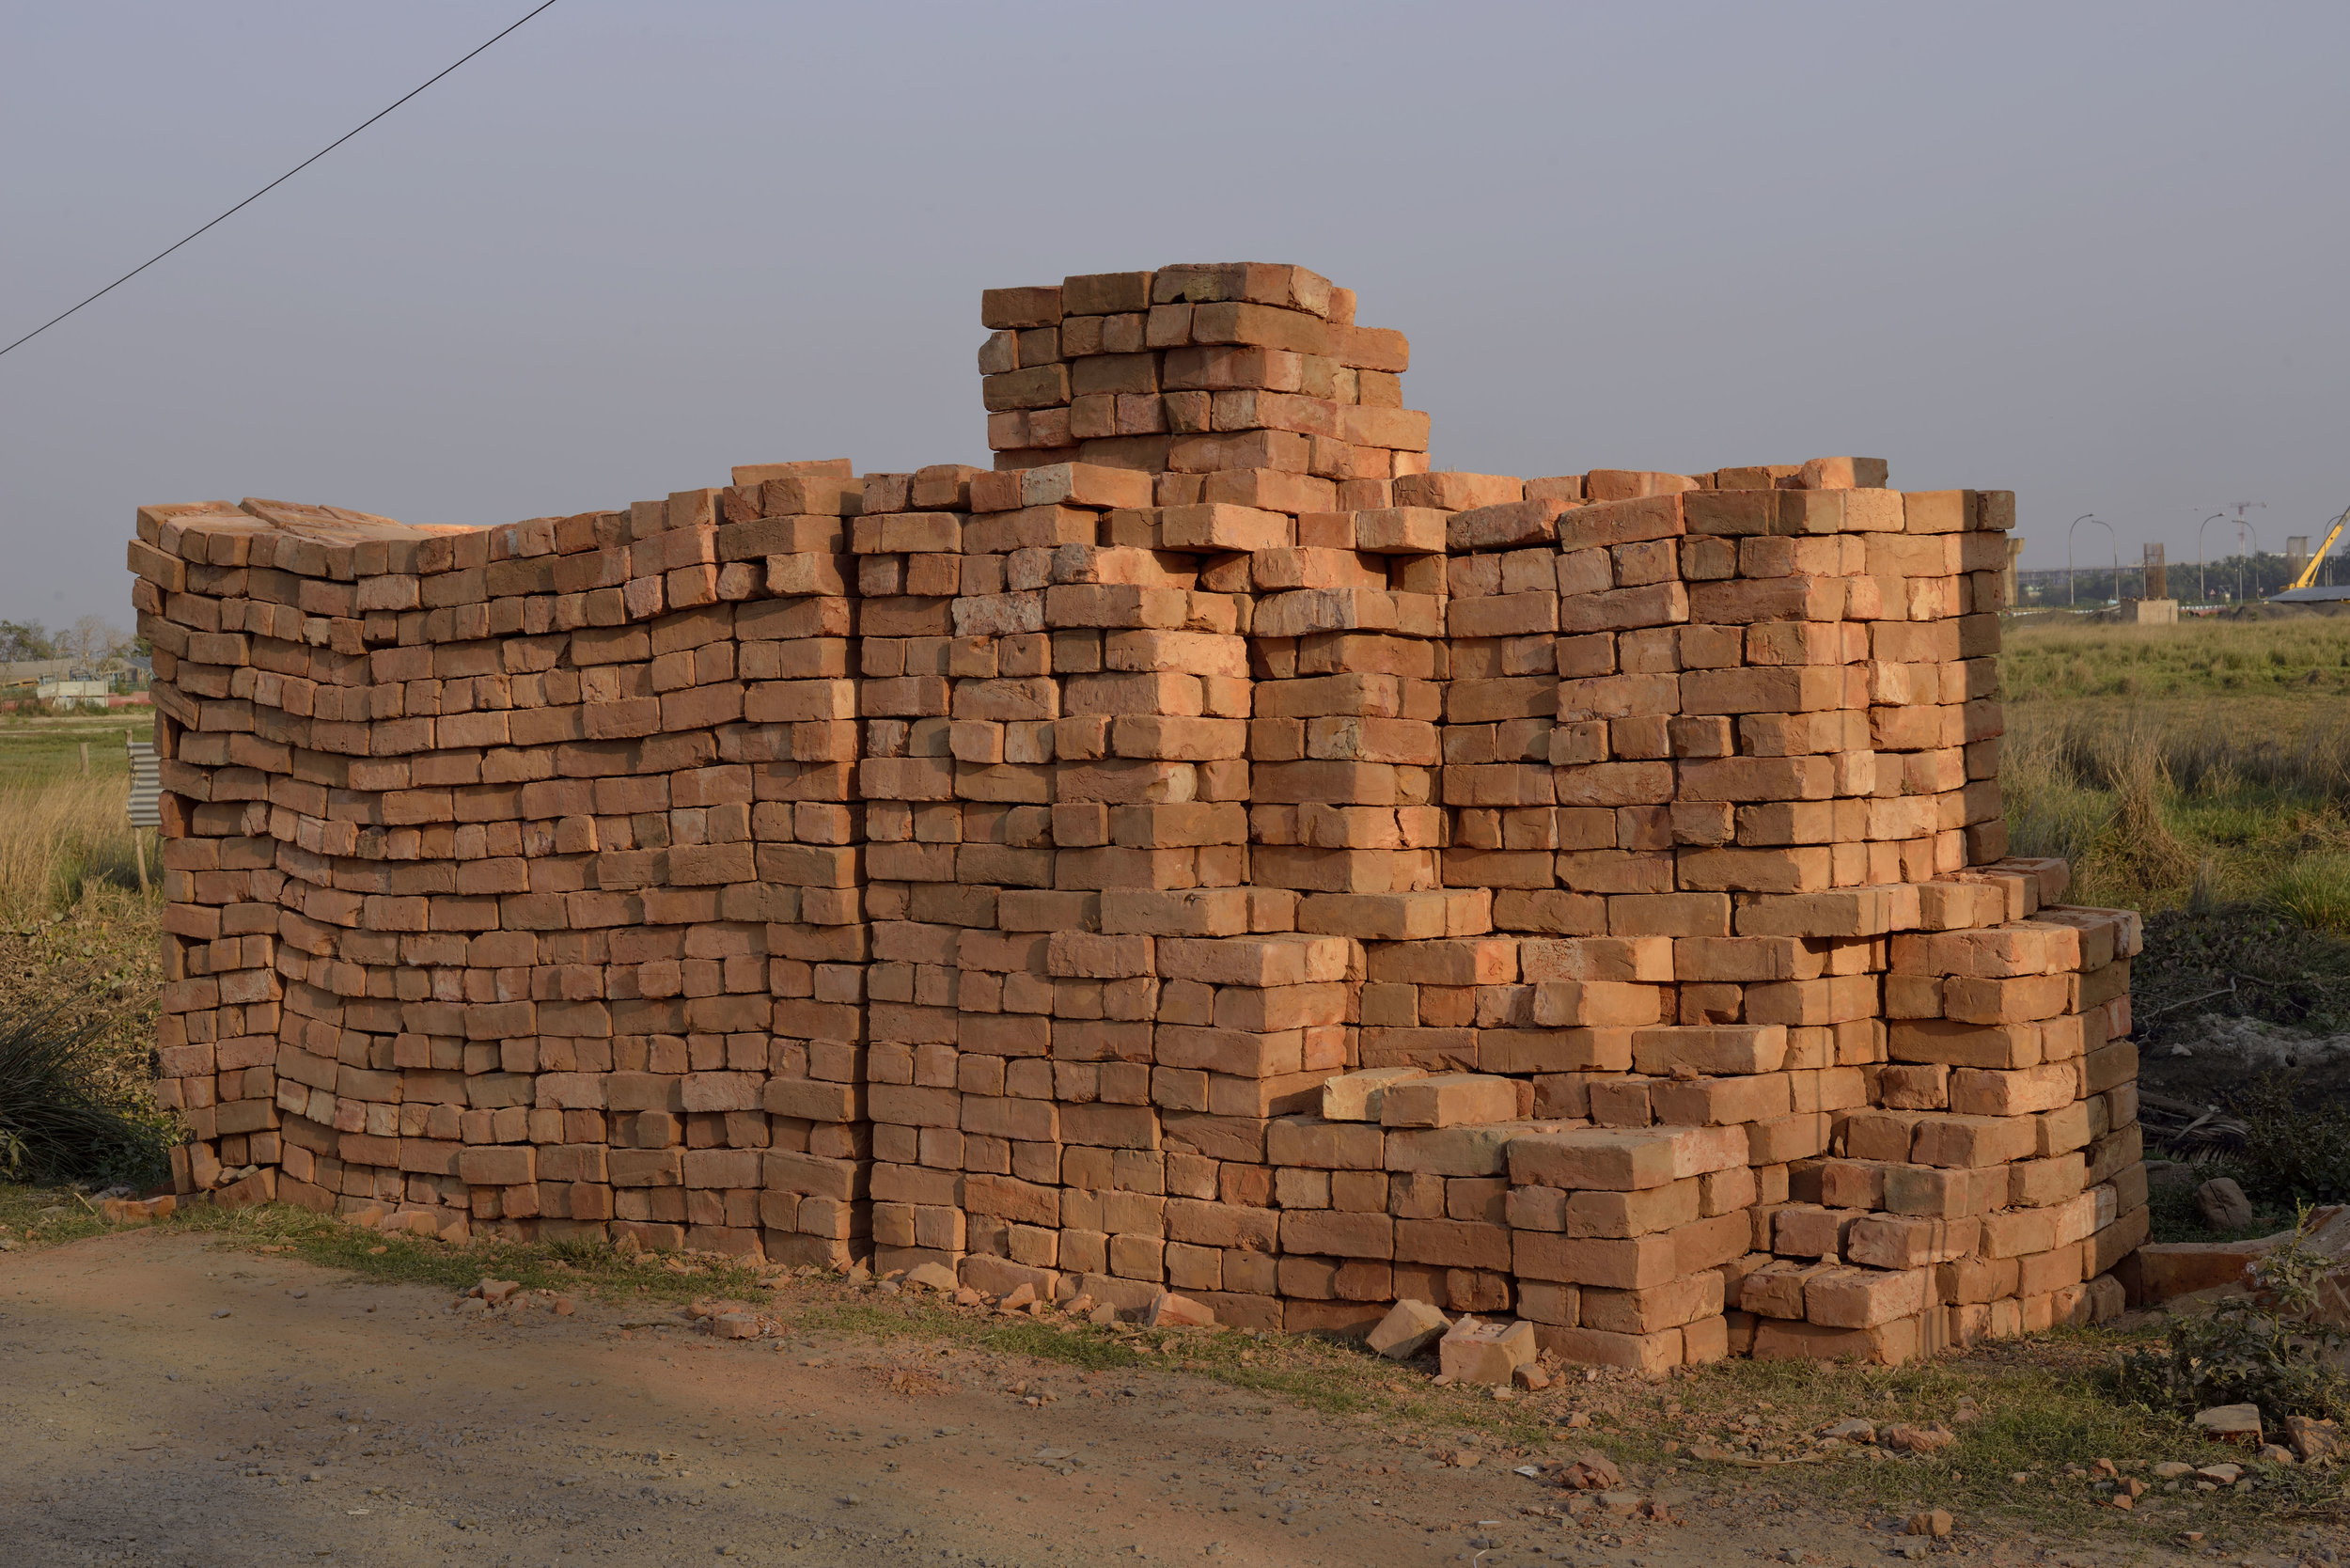 """Bricks on the Outskirts of Kolkata, India  The use of bricks as a building material goes back at least 9,500 years as confirmed at a site in Tell Aswad in the upper Tigris region of what is now modern Syria.  In the Old Testament in Exodus 1:14; 5:4-19 we are told that the Egyptians """"came to dread the Israelites and worked them ruthlessly. They made their lives bitter with harsh labor in bricks and mortar.""""   The organization Union Solidarity International has been campaigning against """"blood bricks"""" in India since 2012. In the words of Andrew Brody, """"its modern day slavery. Entire families of men, women, and children are working for a pittance, up to 16 hours a day in terrible conditions. There are horrific abuses of minimum wage rates and health and safety regulations, and it's often bonded labor, so they can't escape."""""""